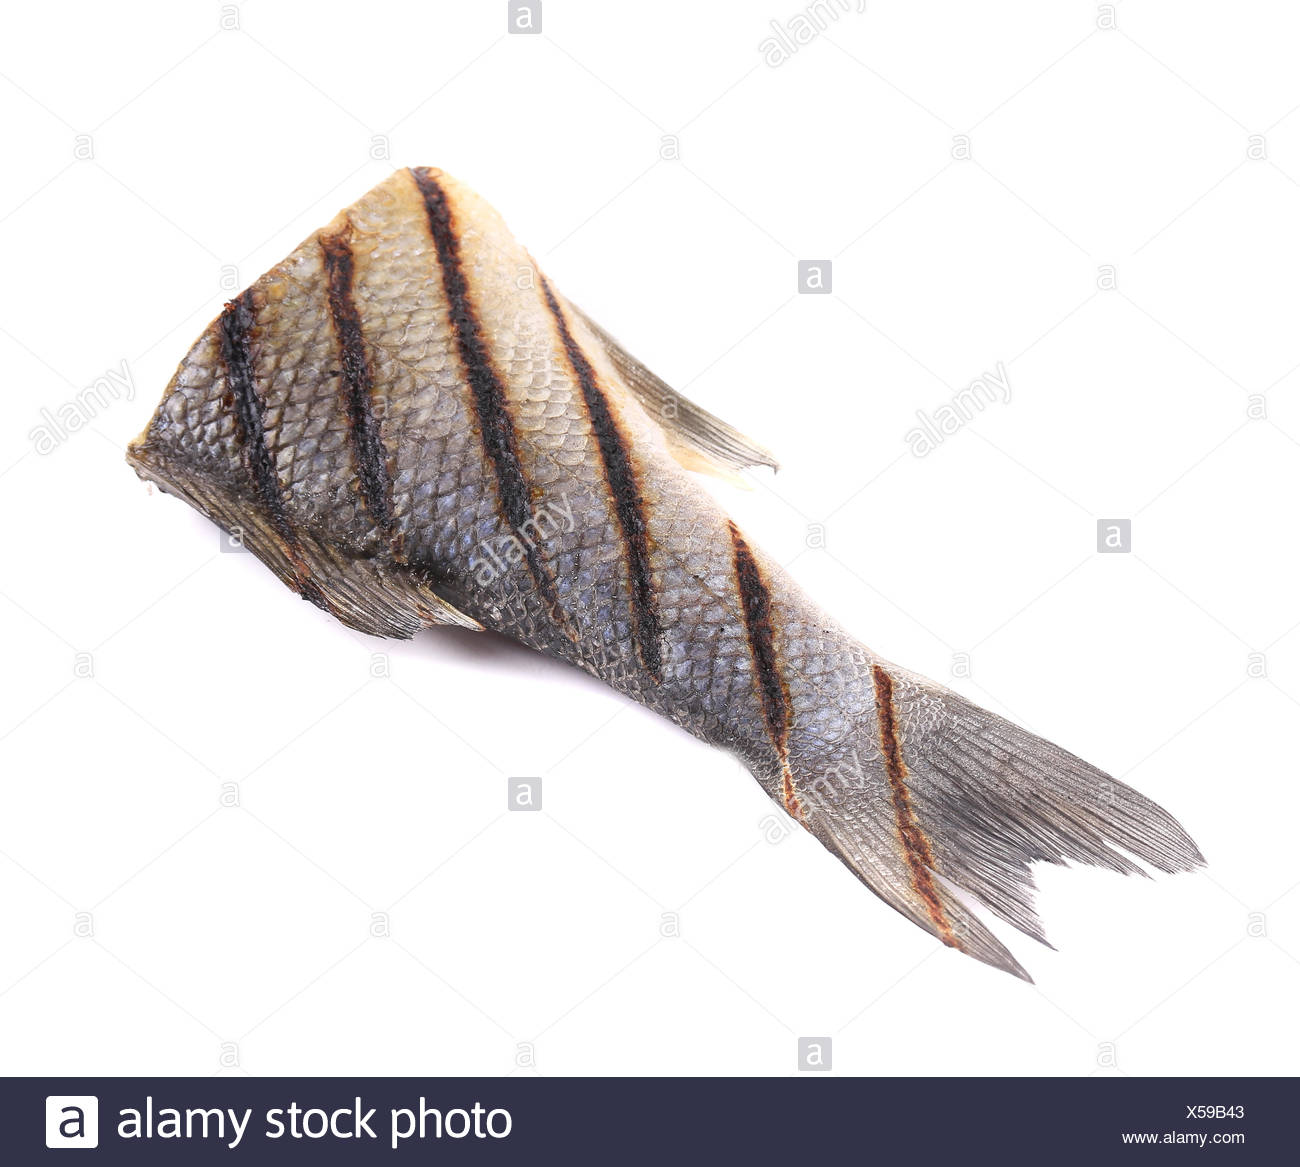 Fish tail. - Stock Image